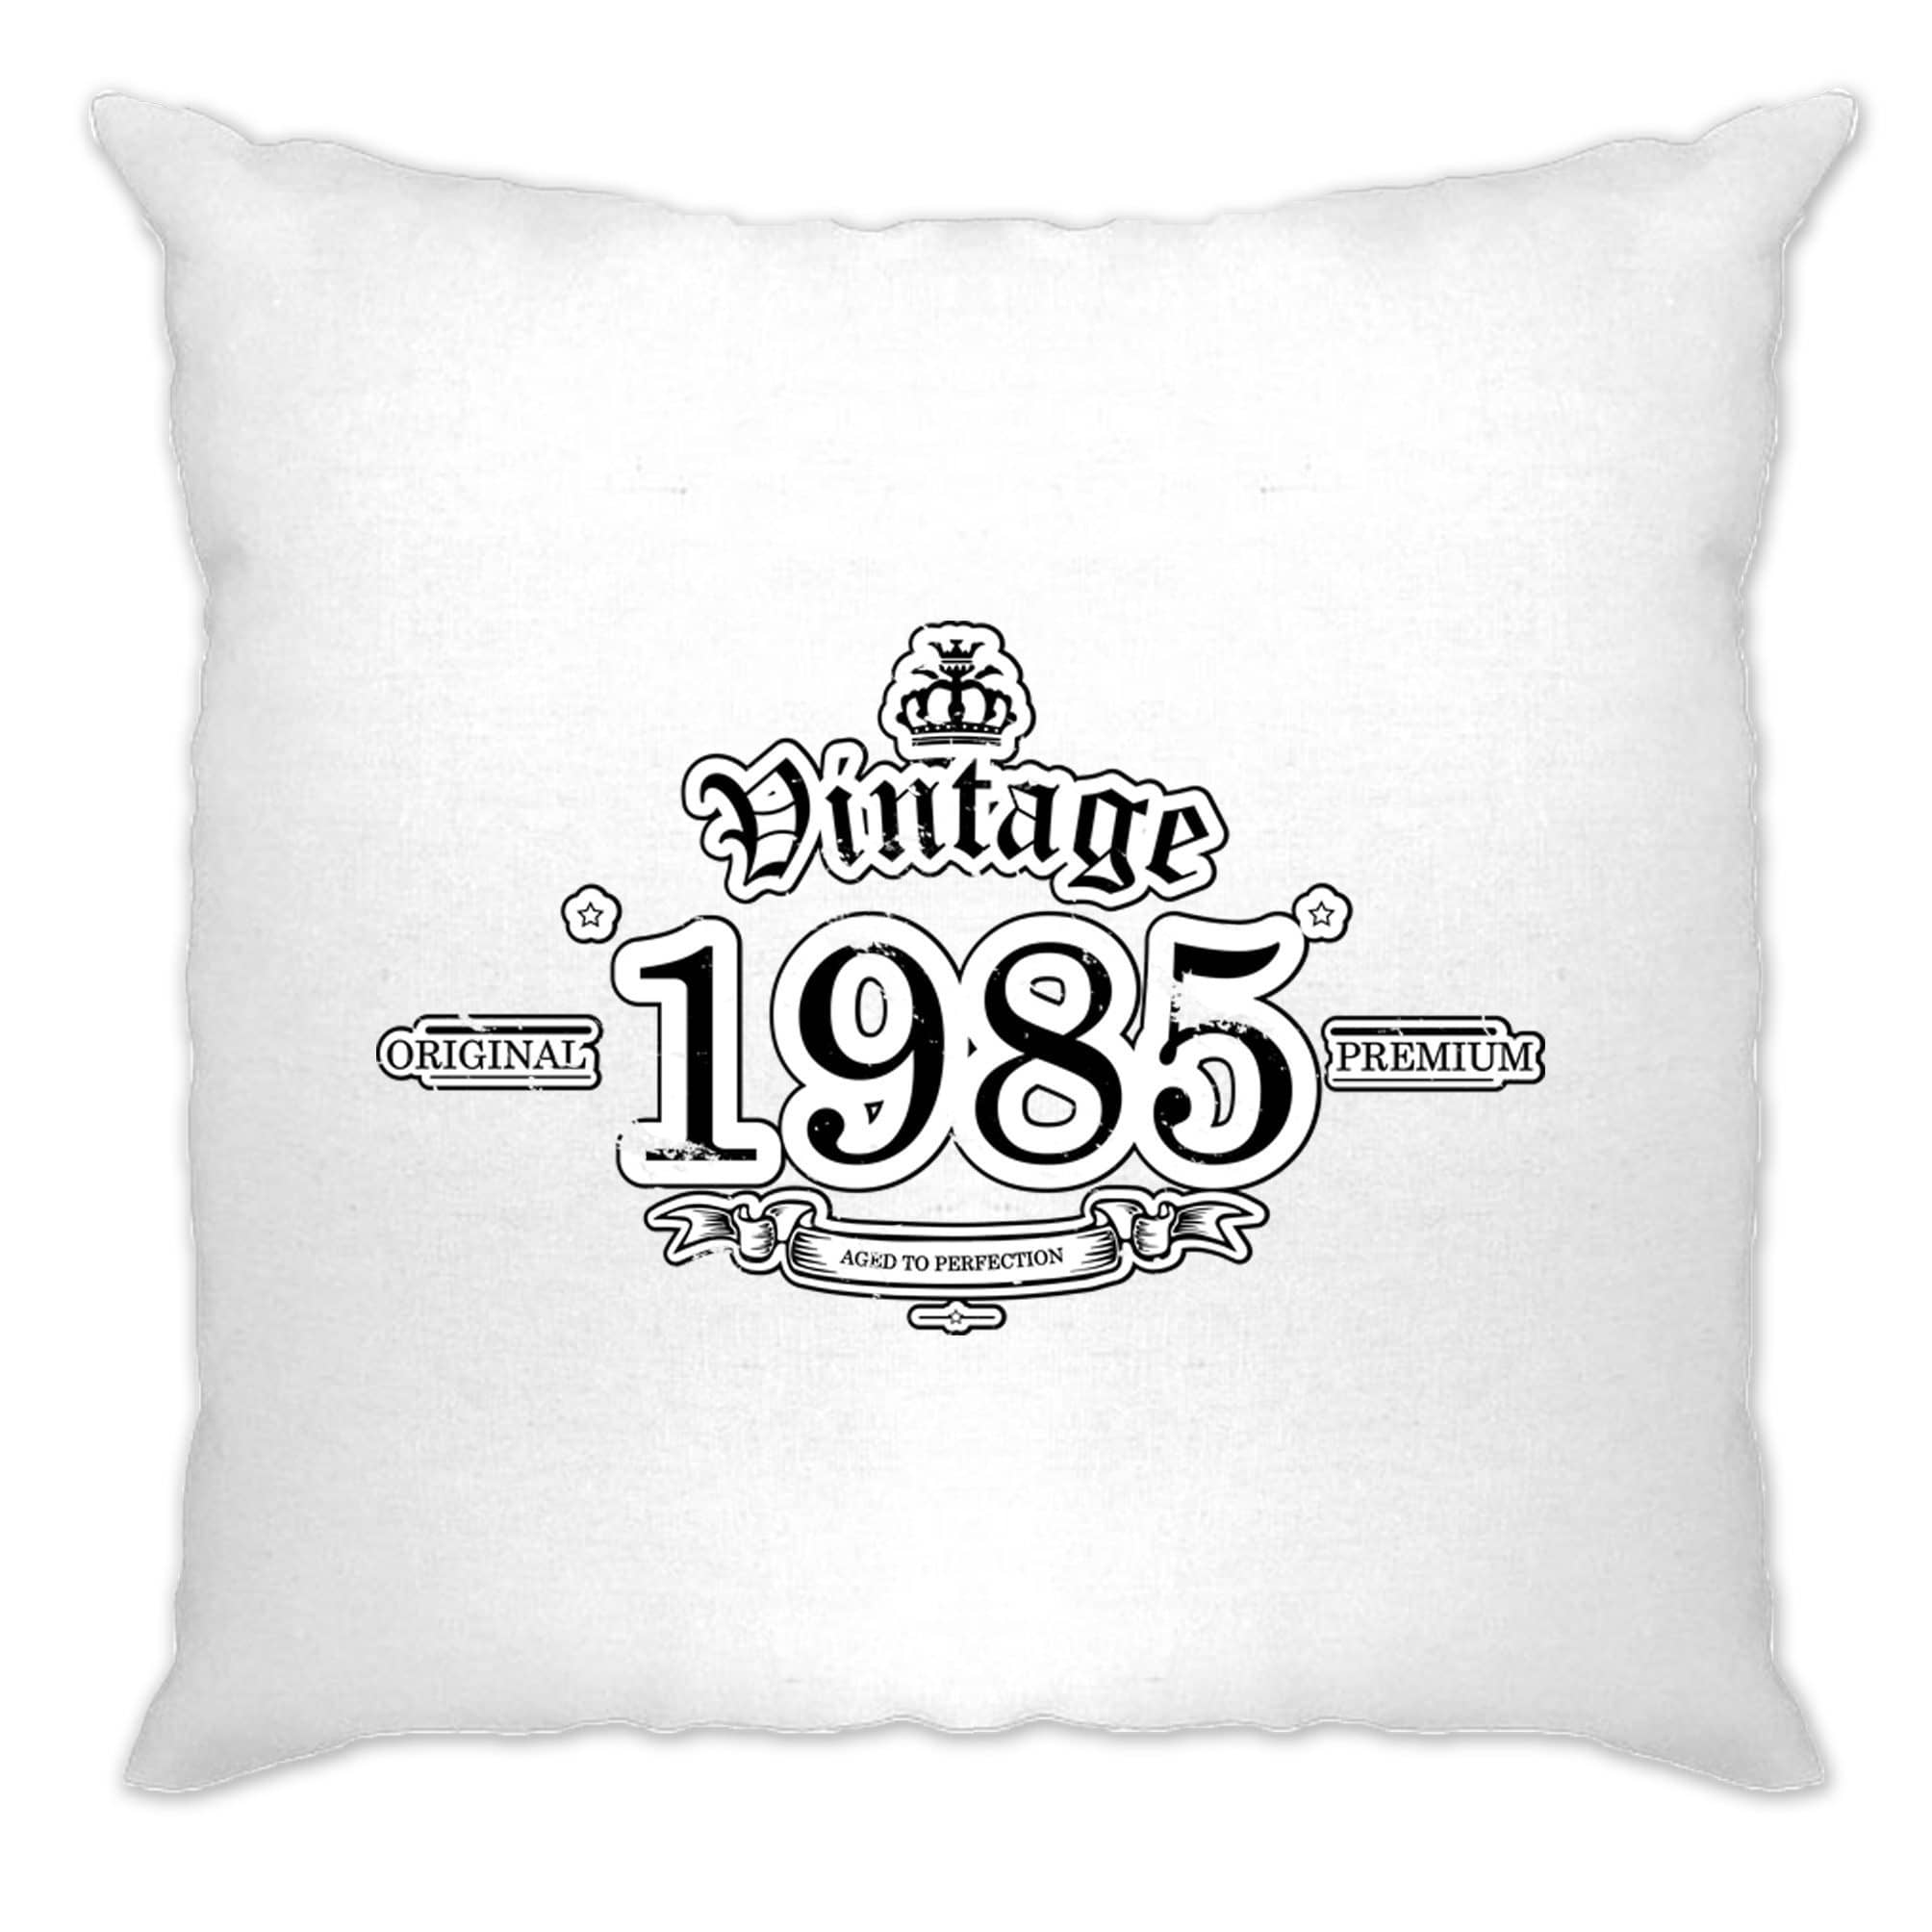 33rd Birthday Cushion Cover Vintage 1985 Aged To Perfection